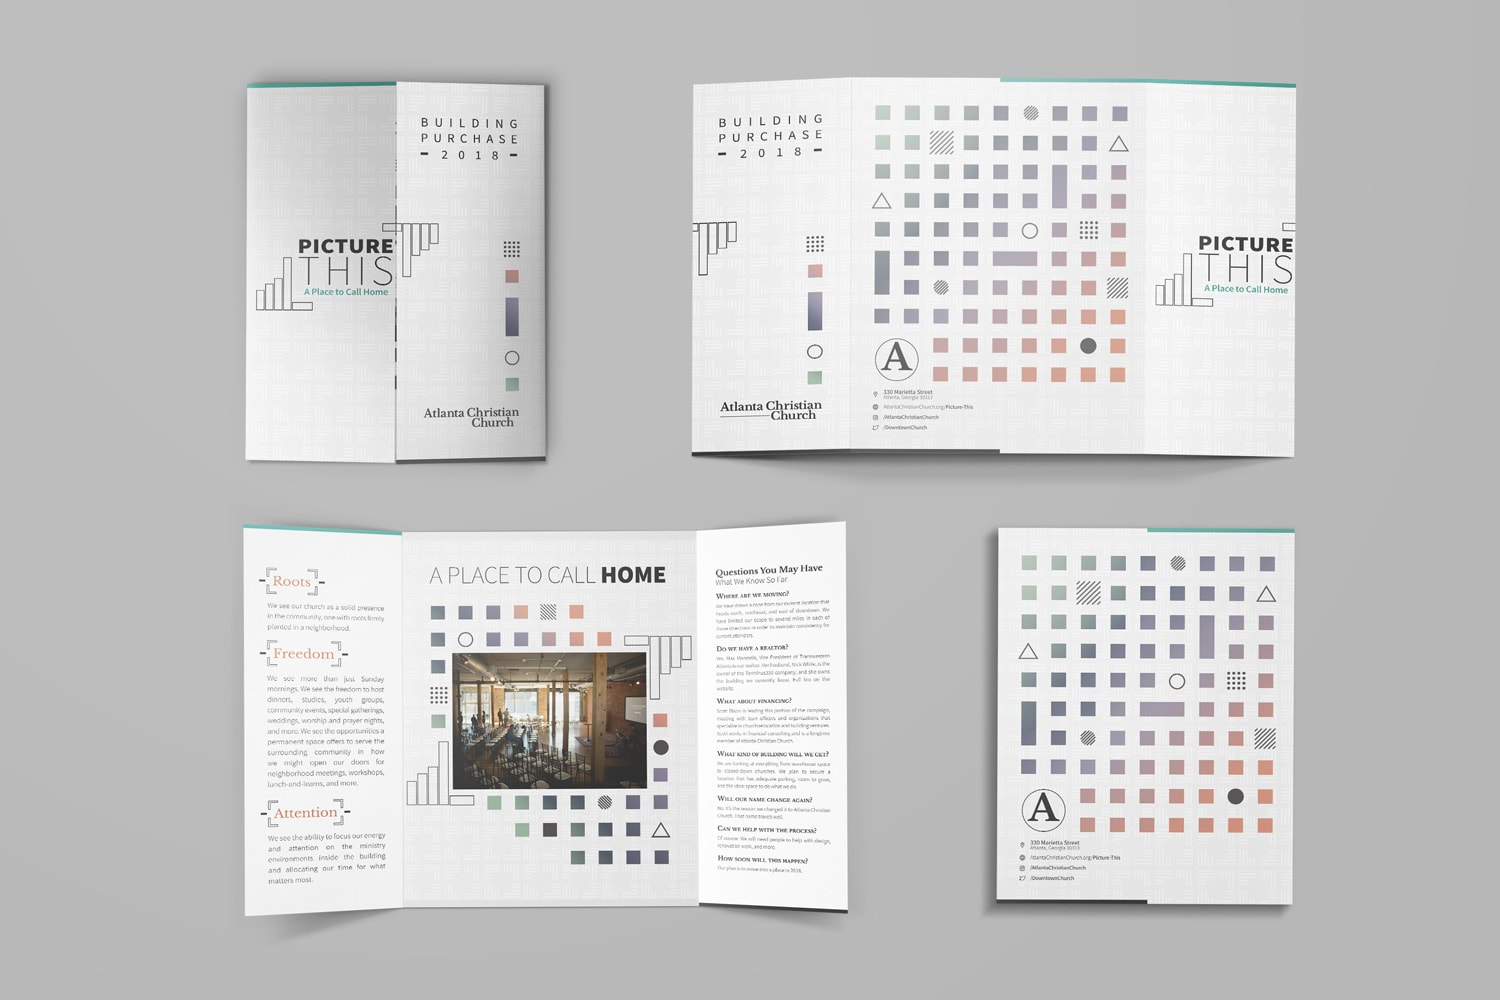 Minimalist design open gate brochure for church fundraising by Abstract Union